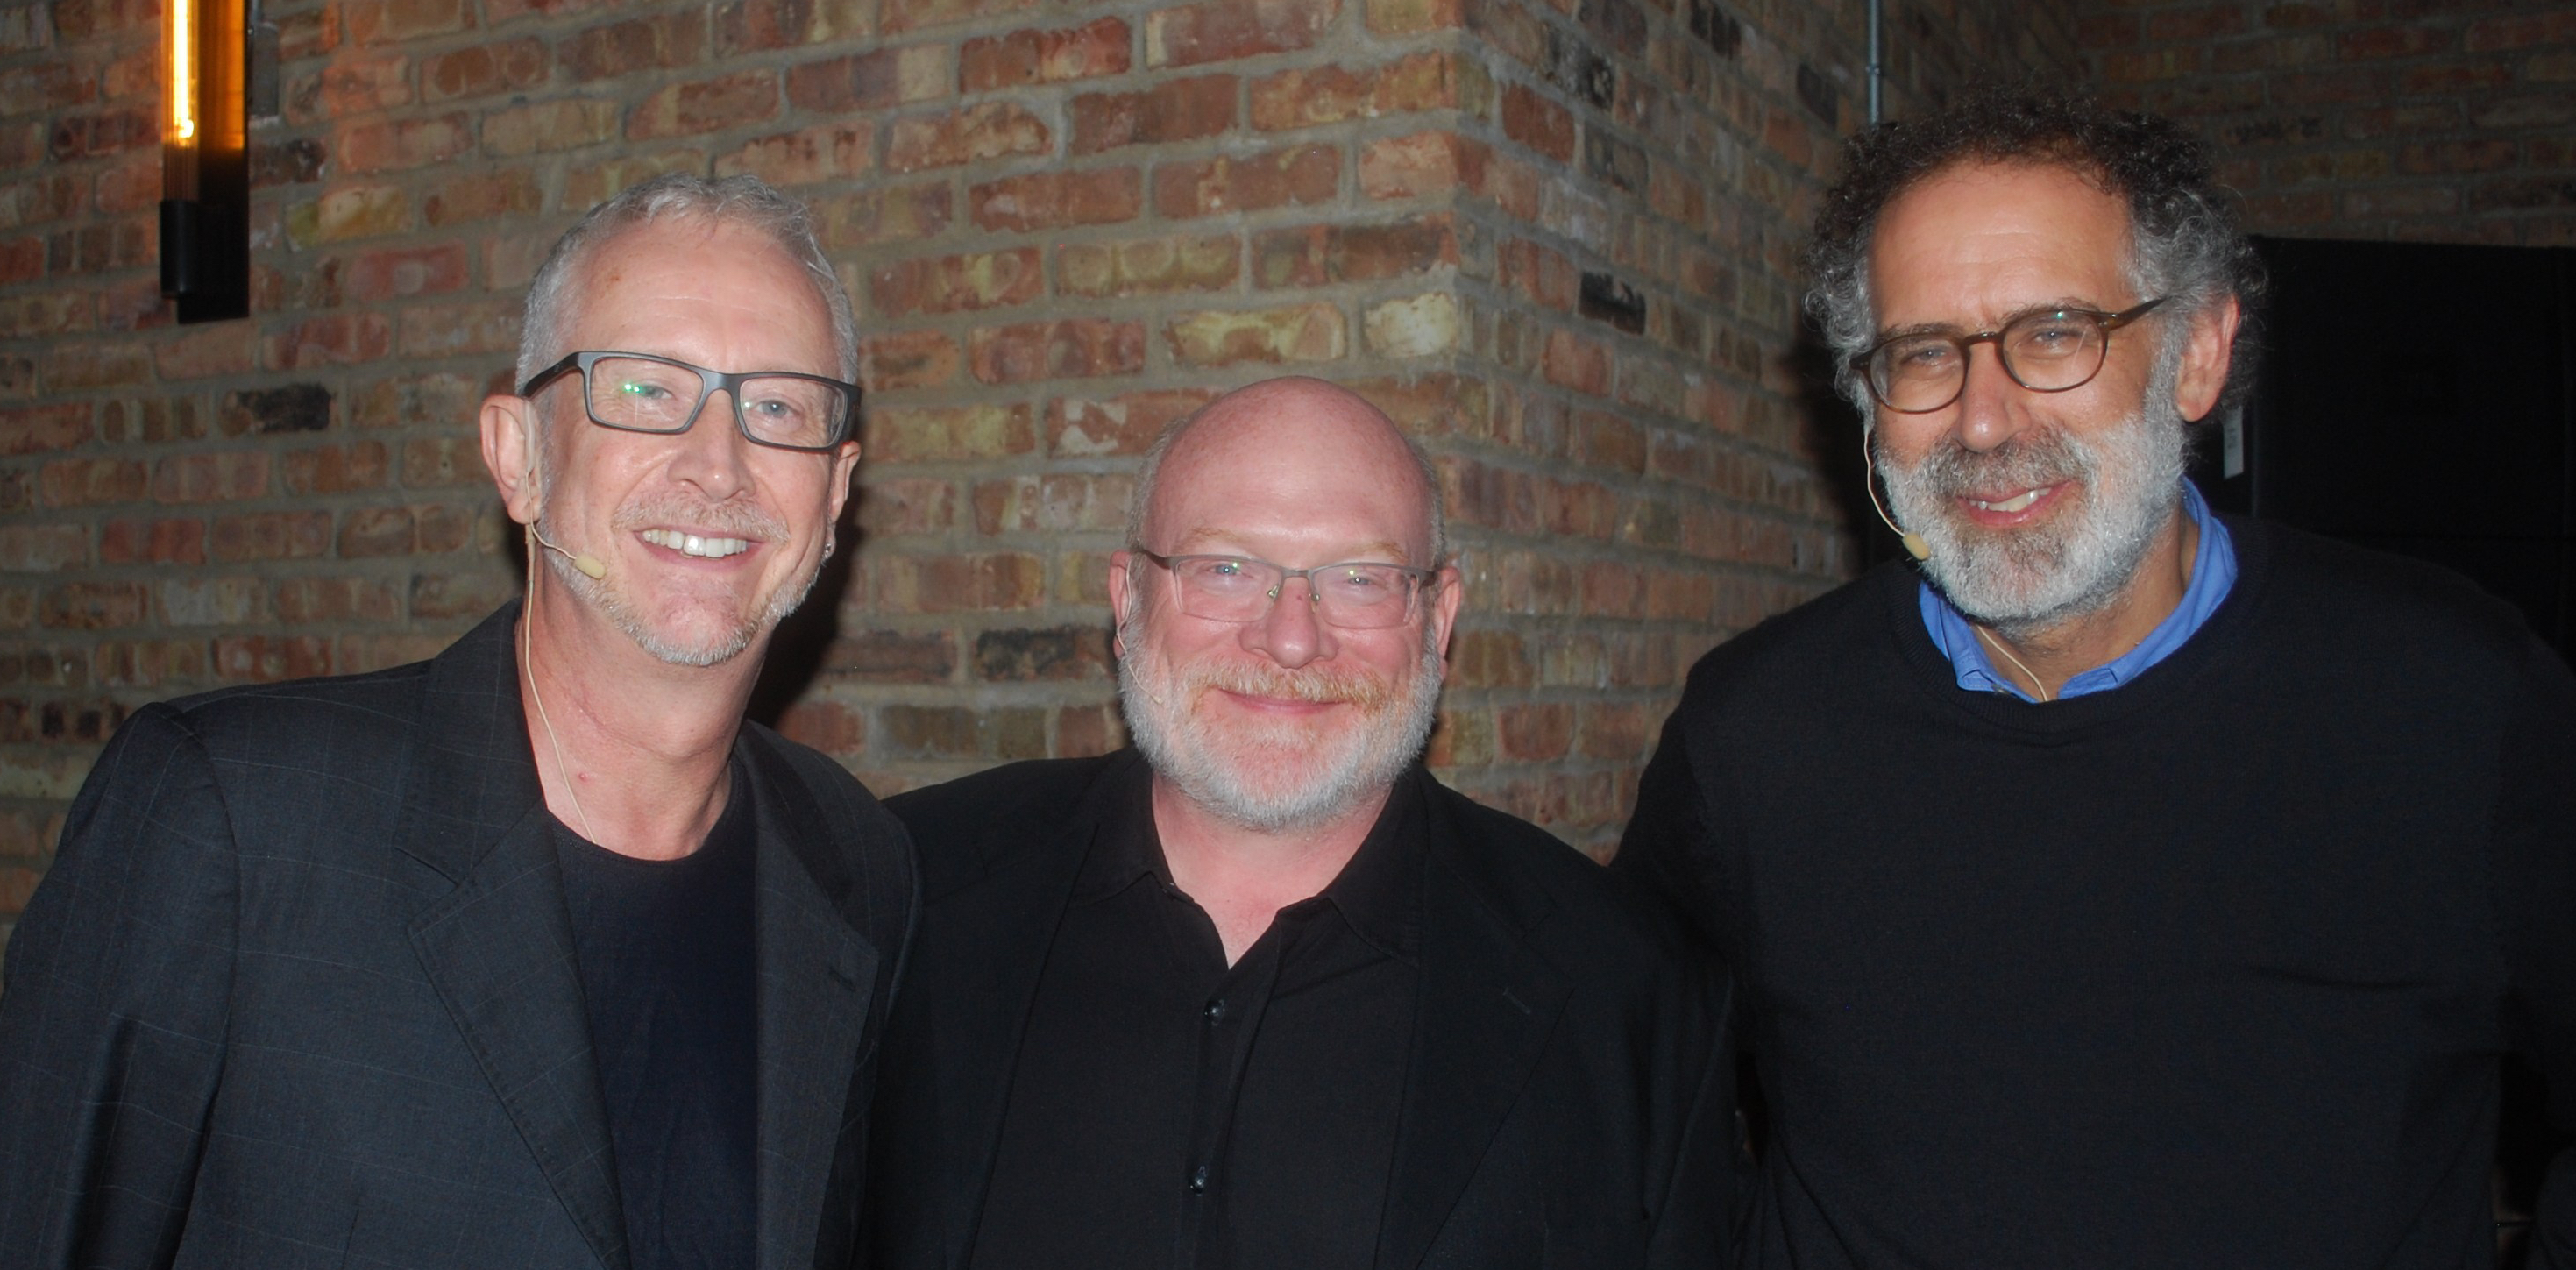 Graham Brown-Martin (left), Dr William Rankin (centre) and Mitchel Resnick (right) at the pi-top fringe event